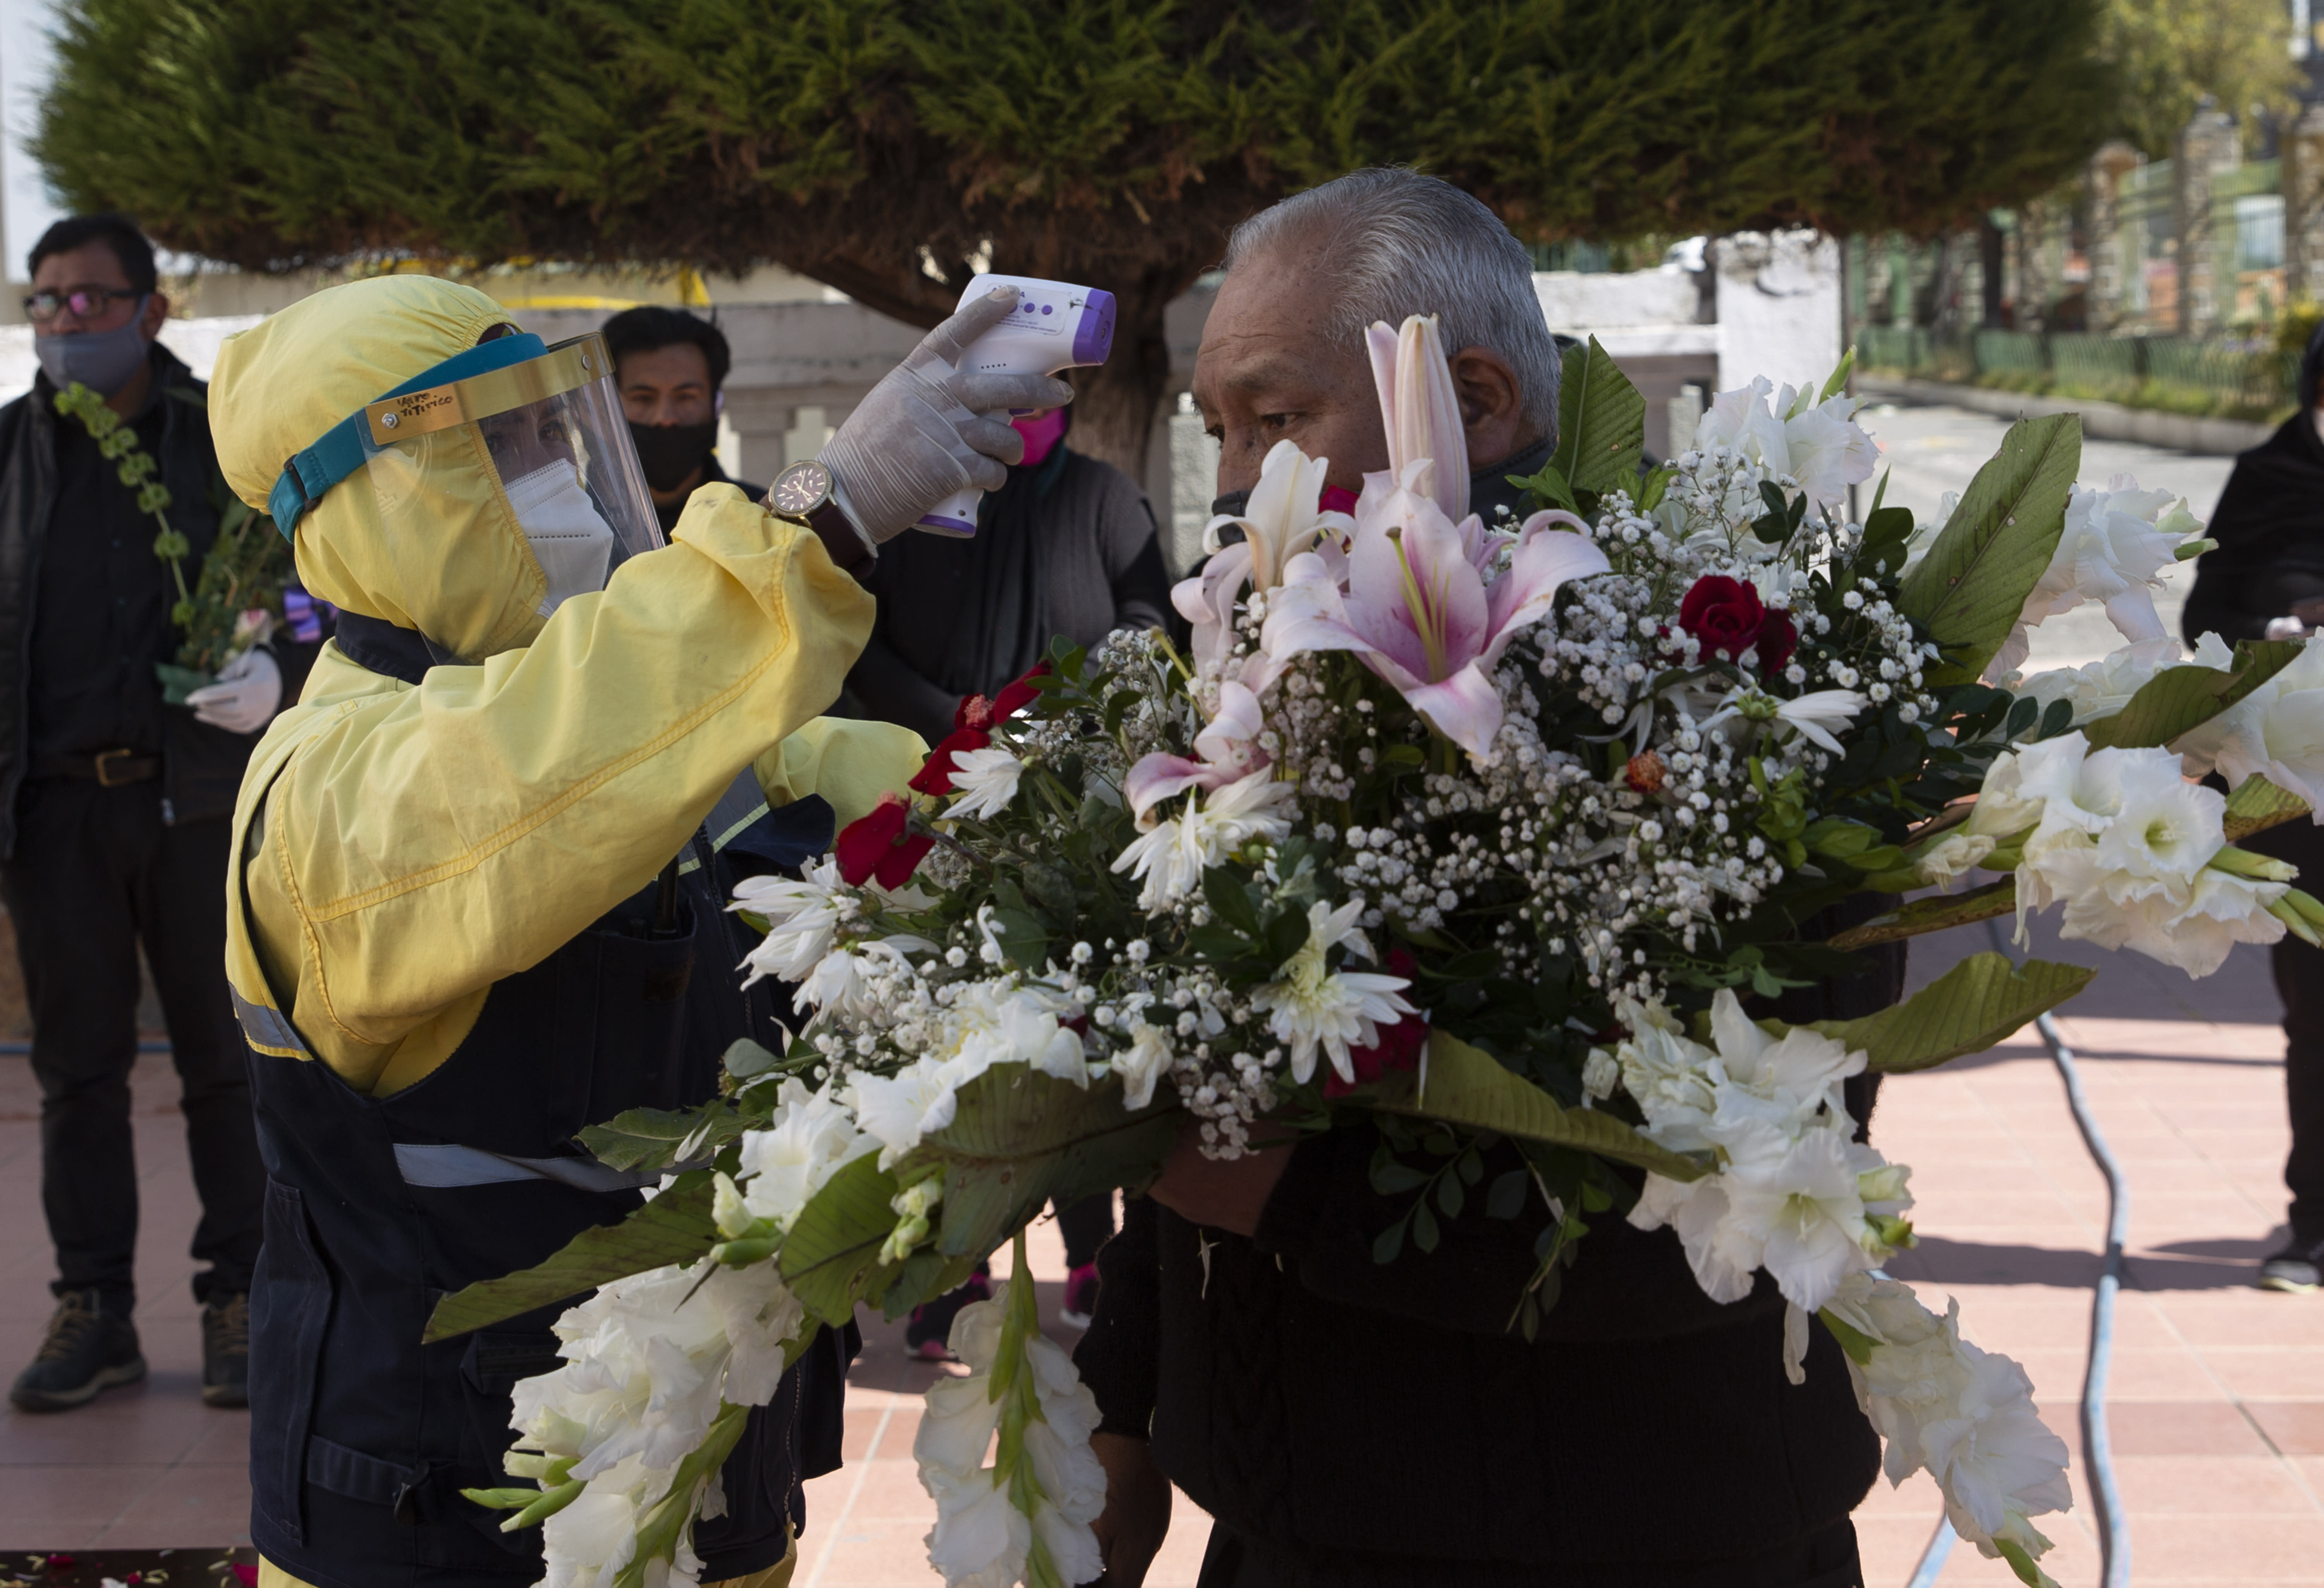 A city worker wearing full protective gear as a precaution against the spread of the new coronavirus, measures the temperature of a relative arriving to attend a burial service at the General Cemetery, in La Paz, Bolivia, Tuesday, July 21, 2020. The person death was unrelated to COVID-19. (AP Photo/Juan Karita)